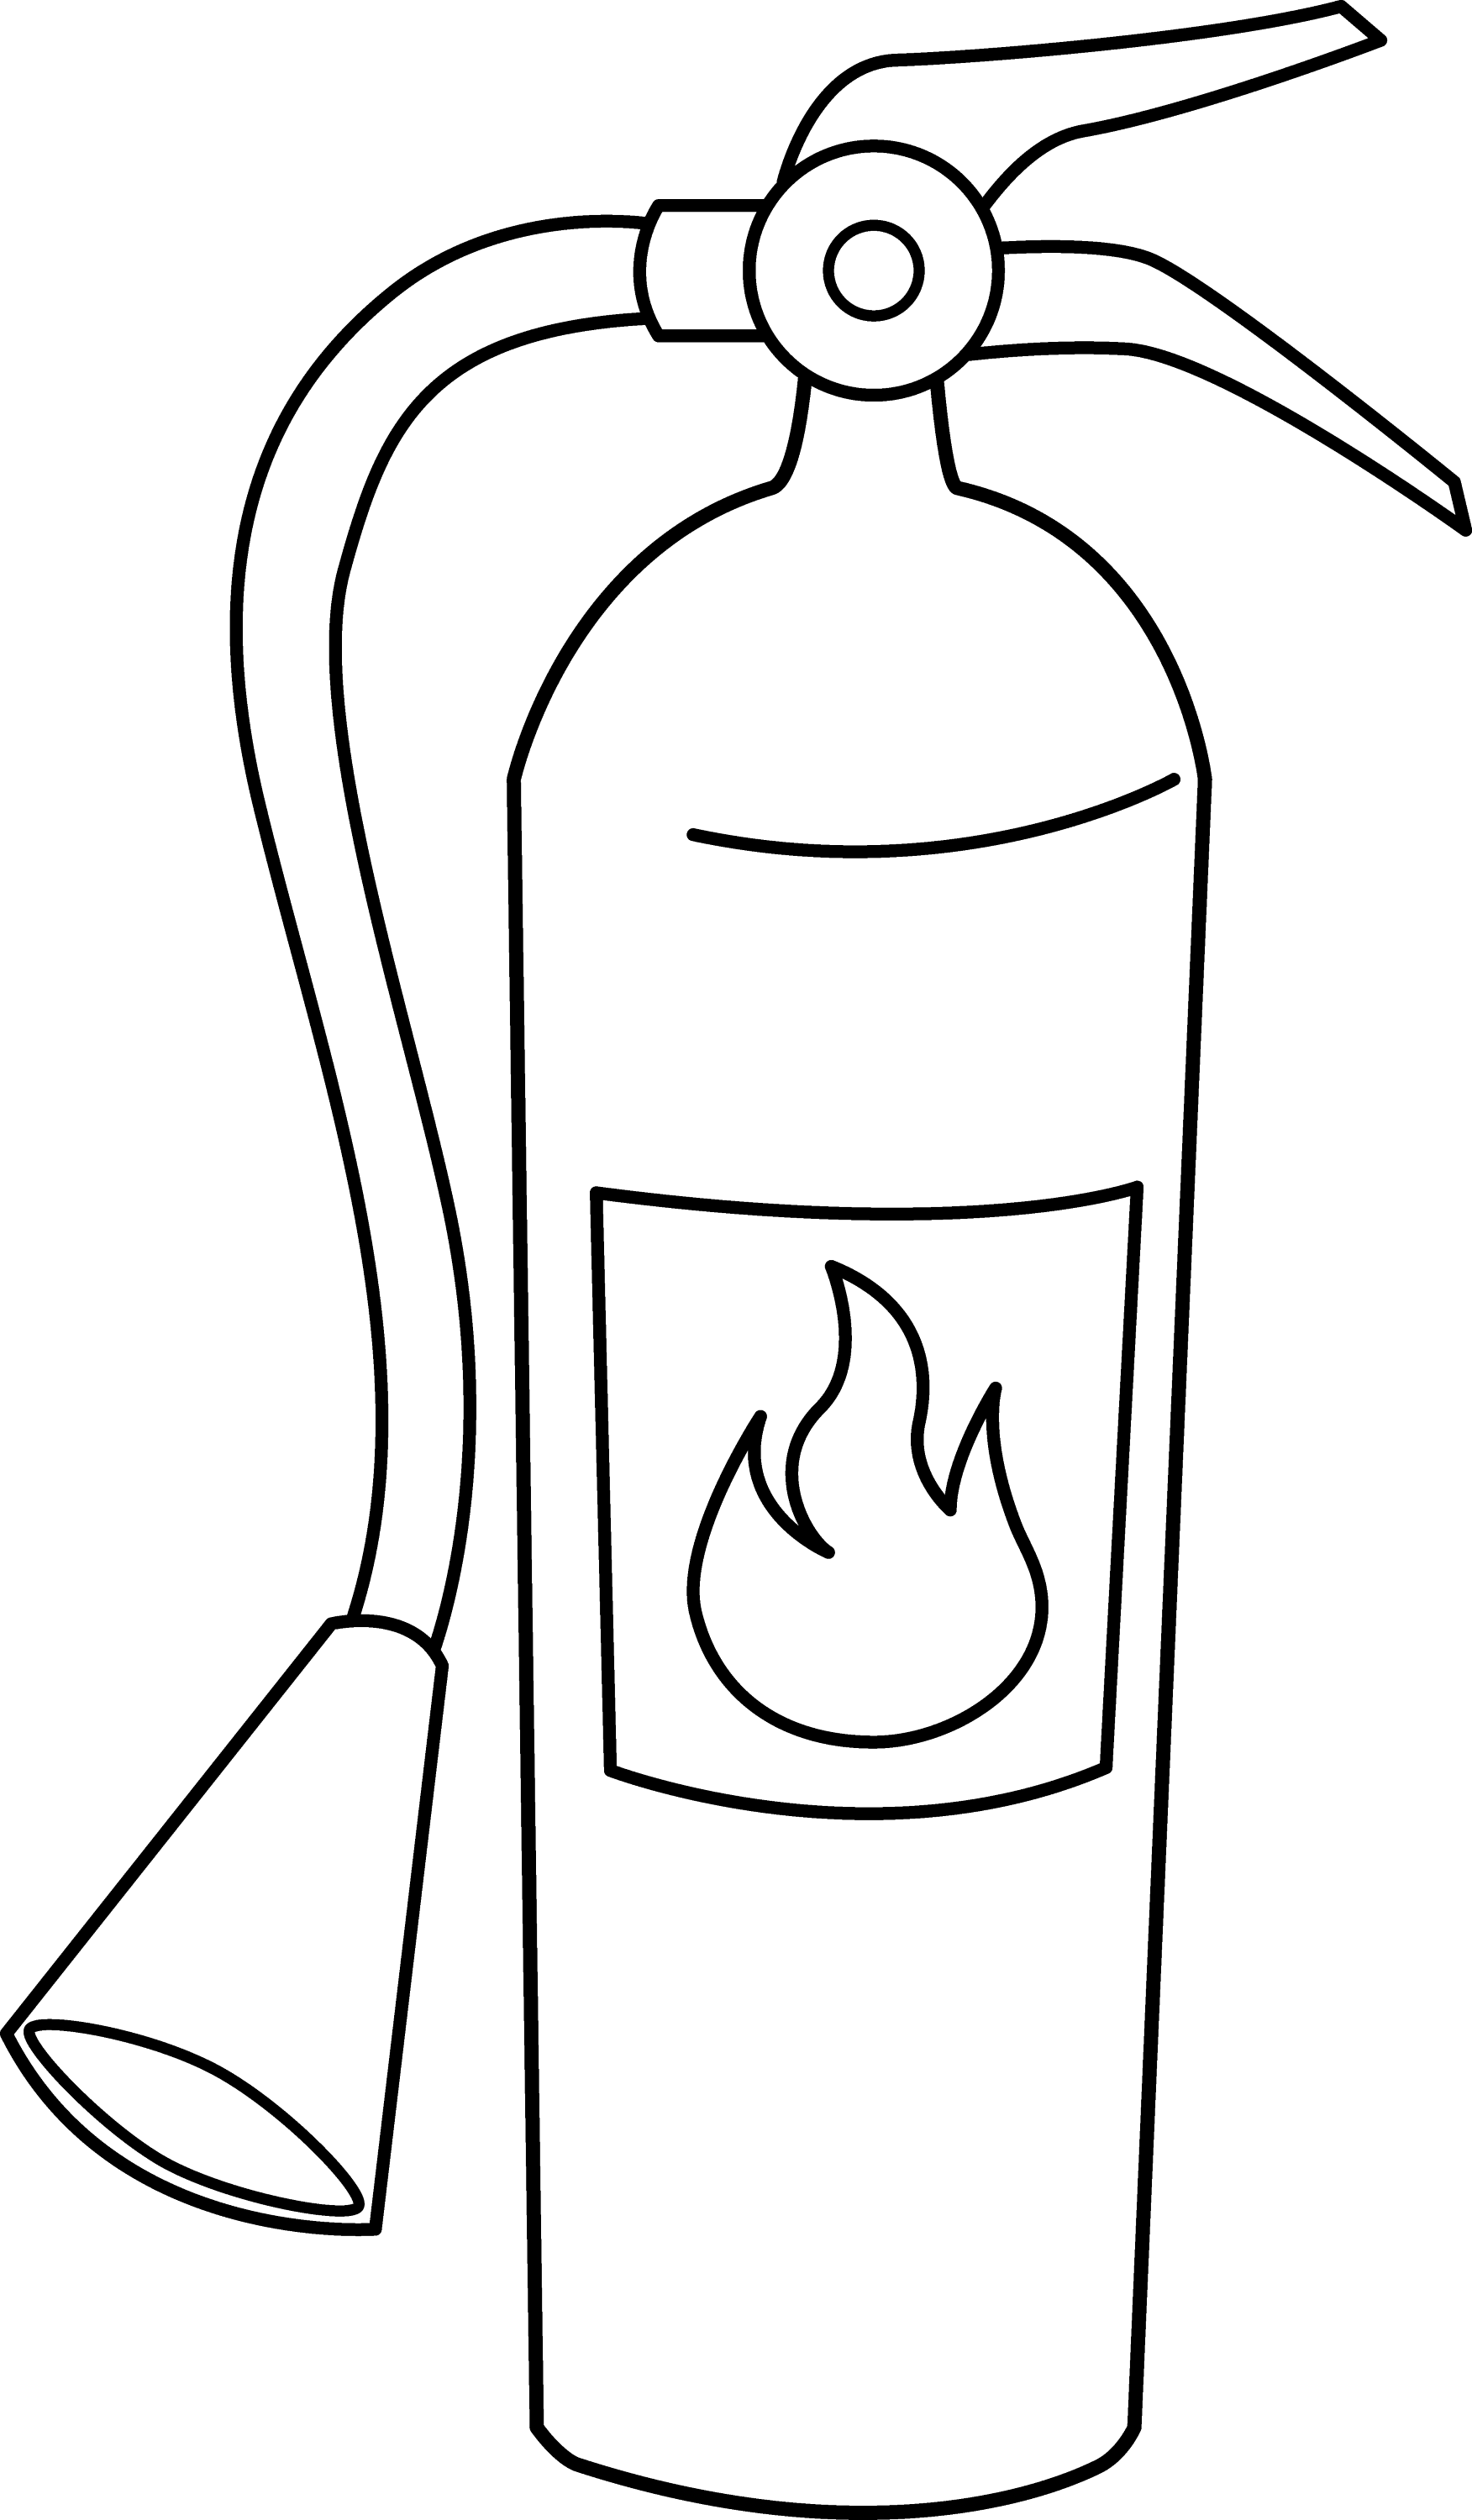 Fire Extinguisher Line Art Free Clip Art Extinguisher Coloring Page